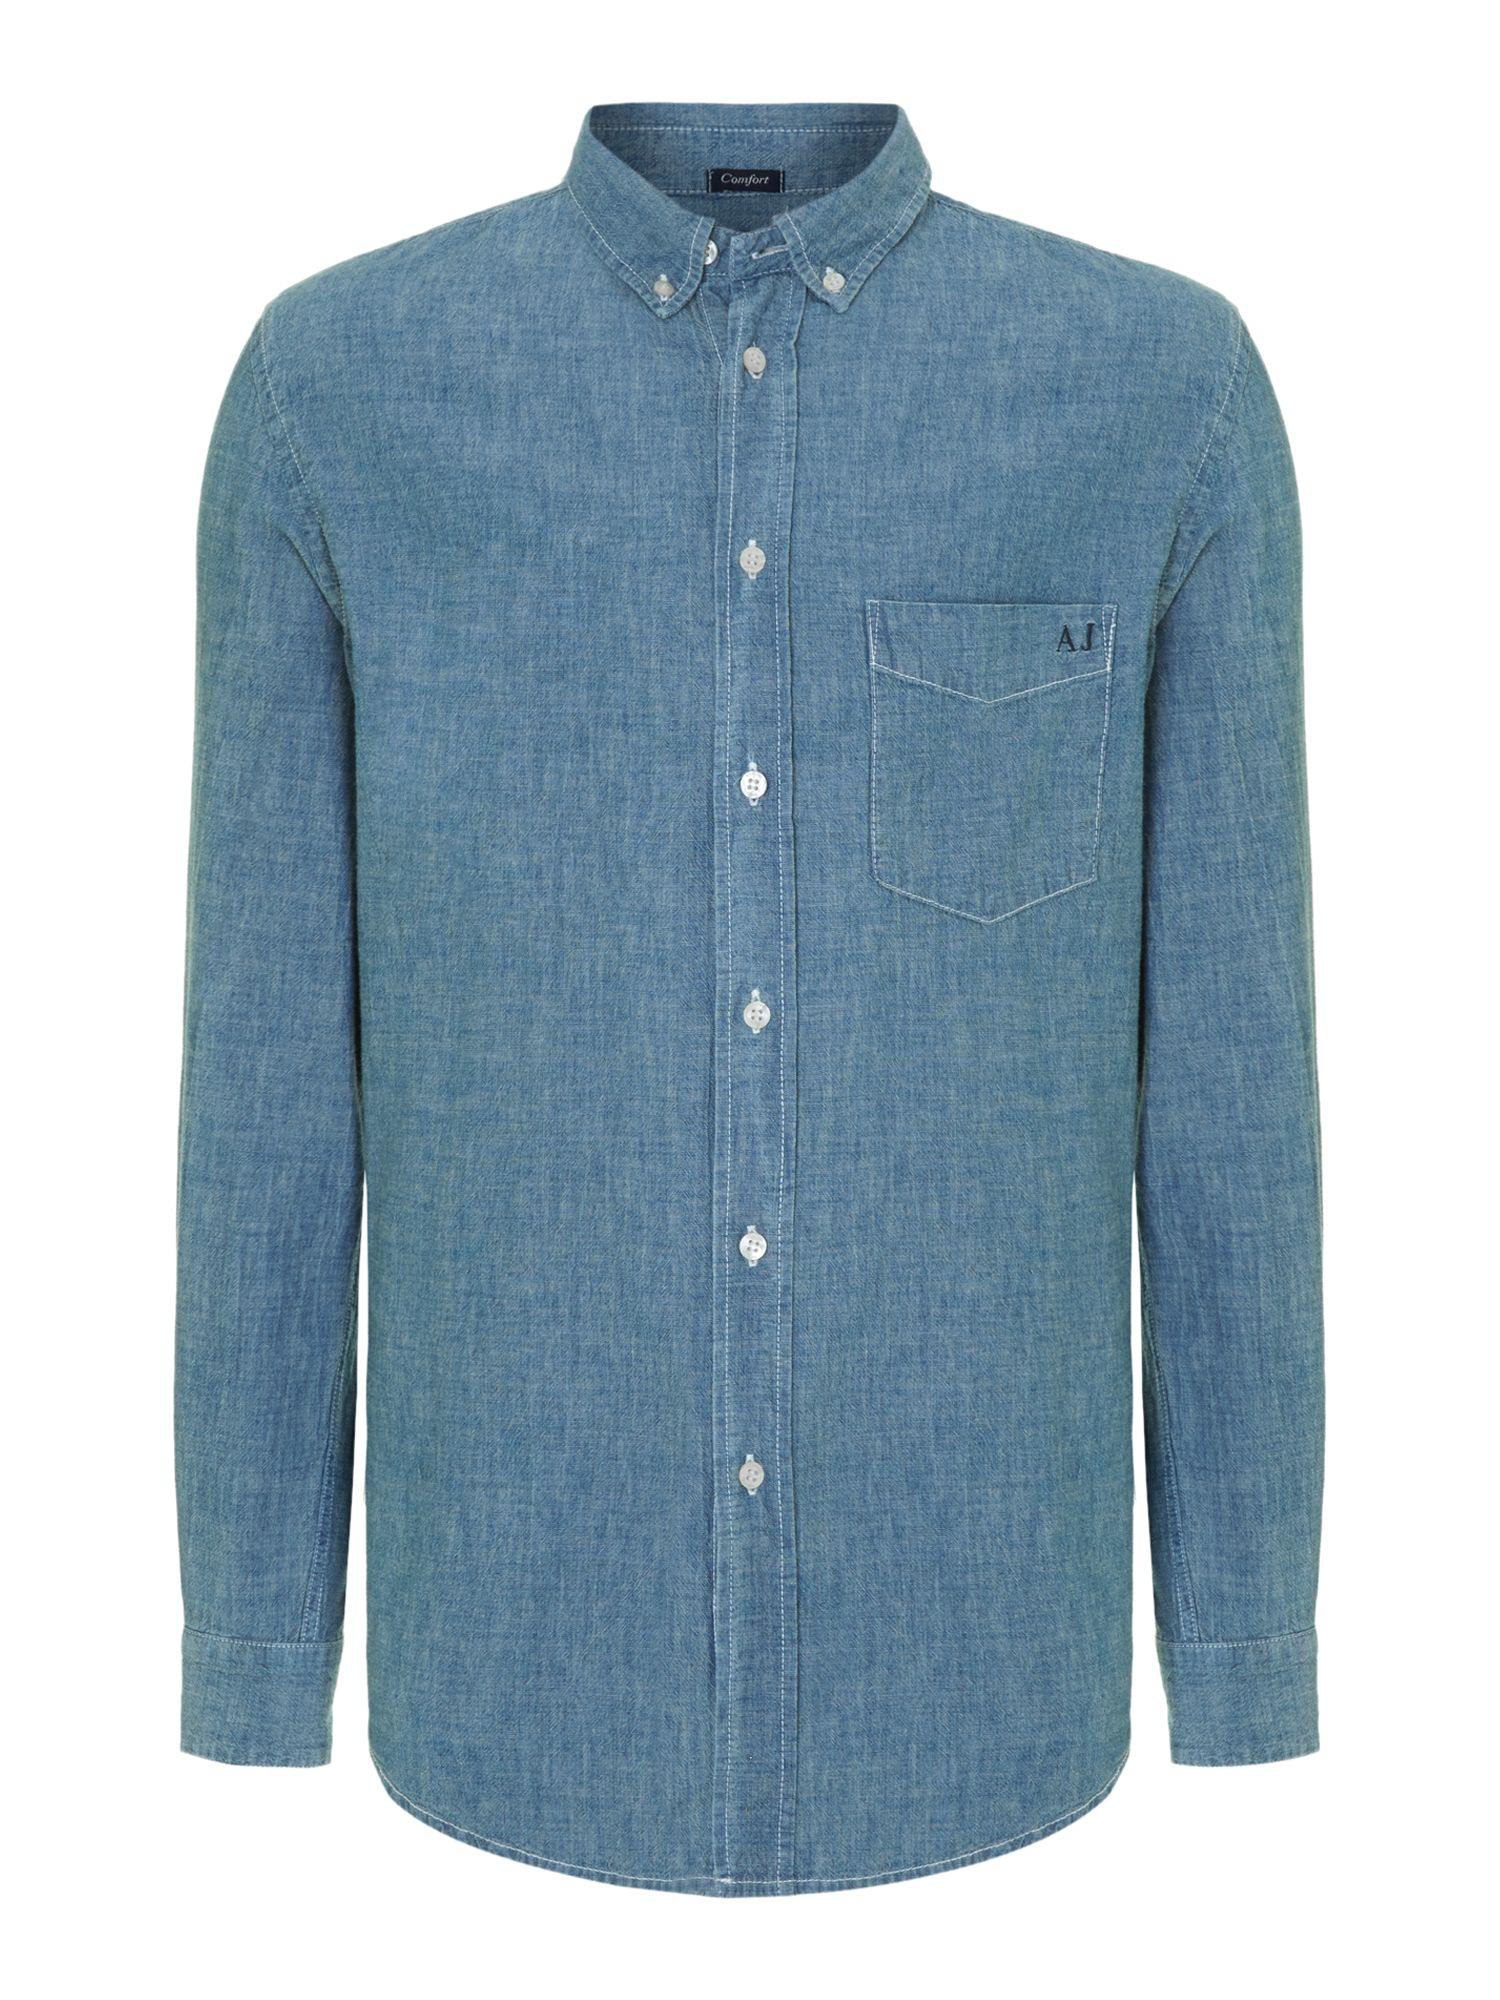 Armani jeans long sleeve chambray shirt in blue for men for Chambray jeans